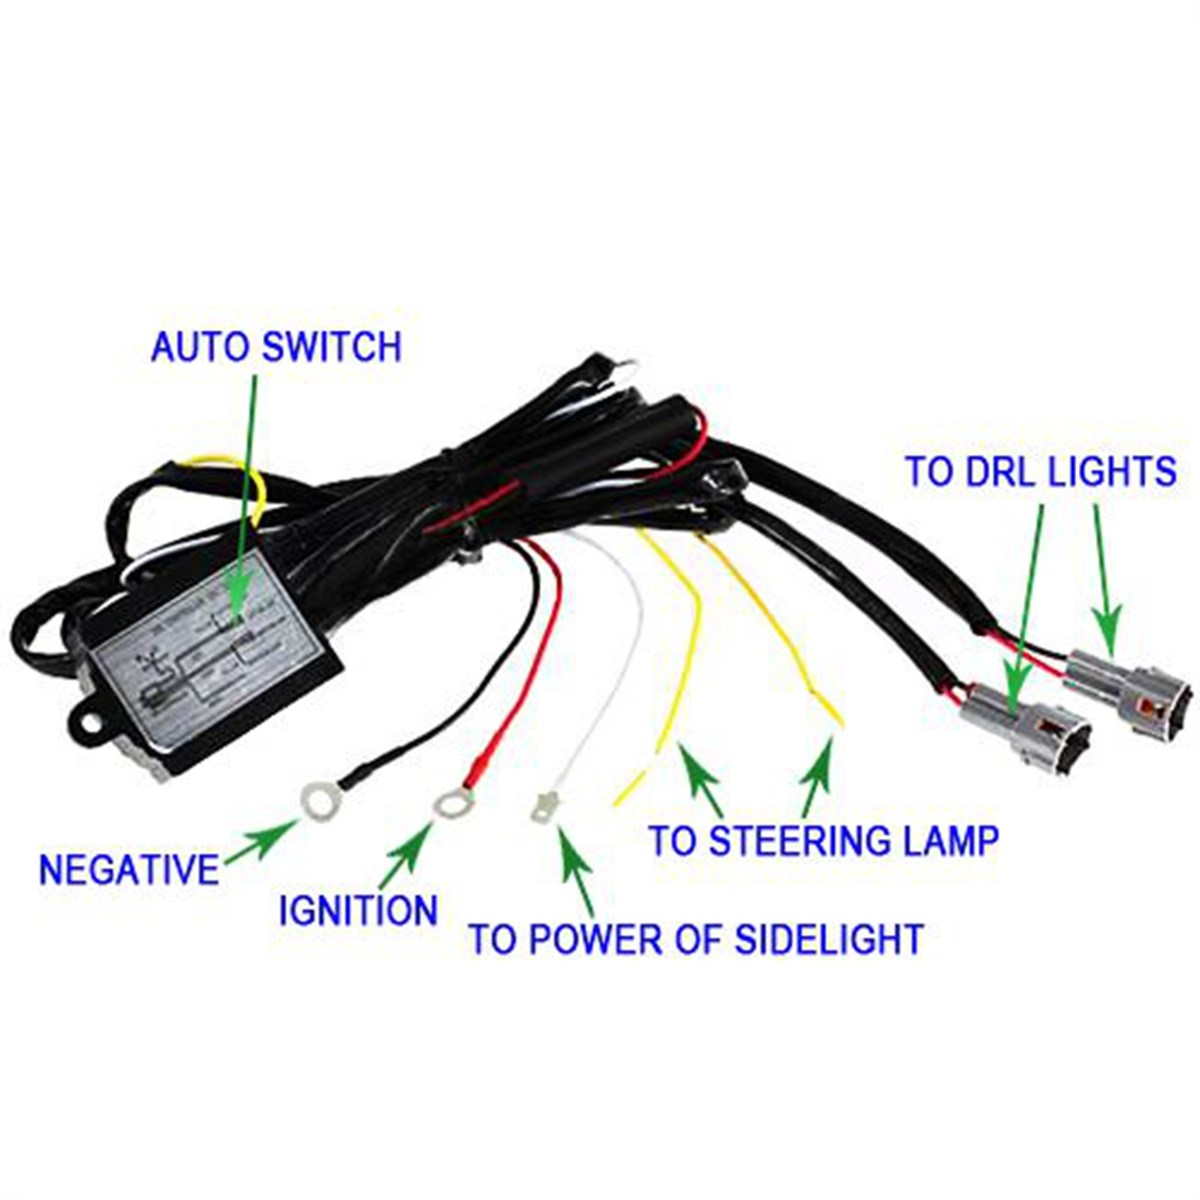 hight resolution of drl led daytime running light relay harness automatic on off control switch 12v warning lights